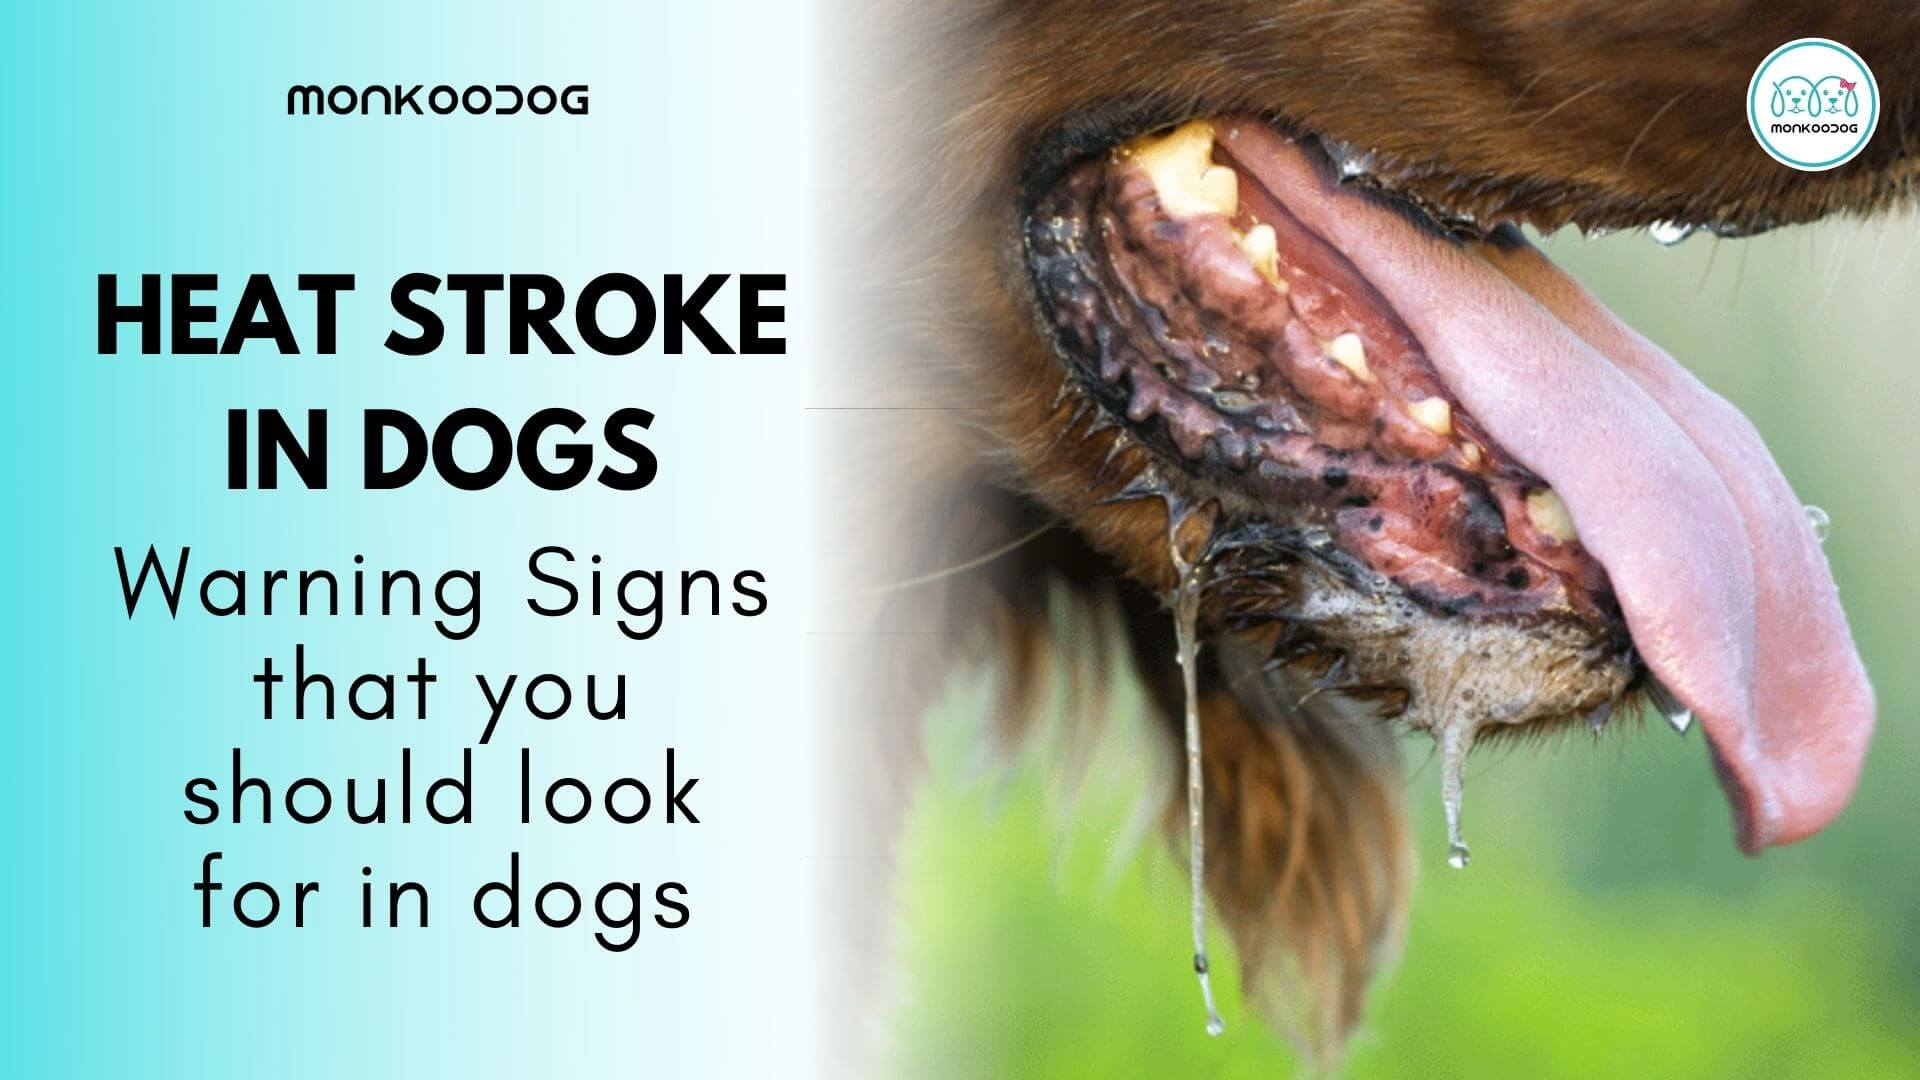 Warning Signs Your Dog Is Suffering from Heat Stroke